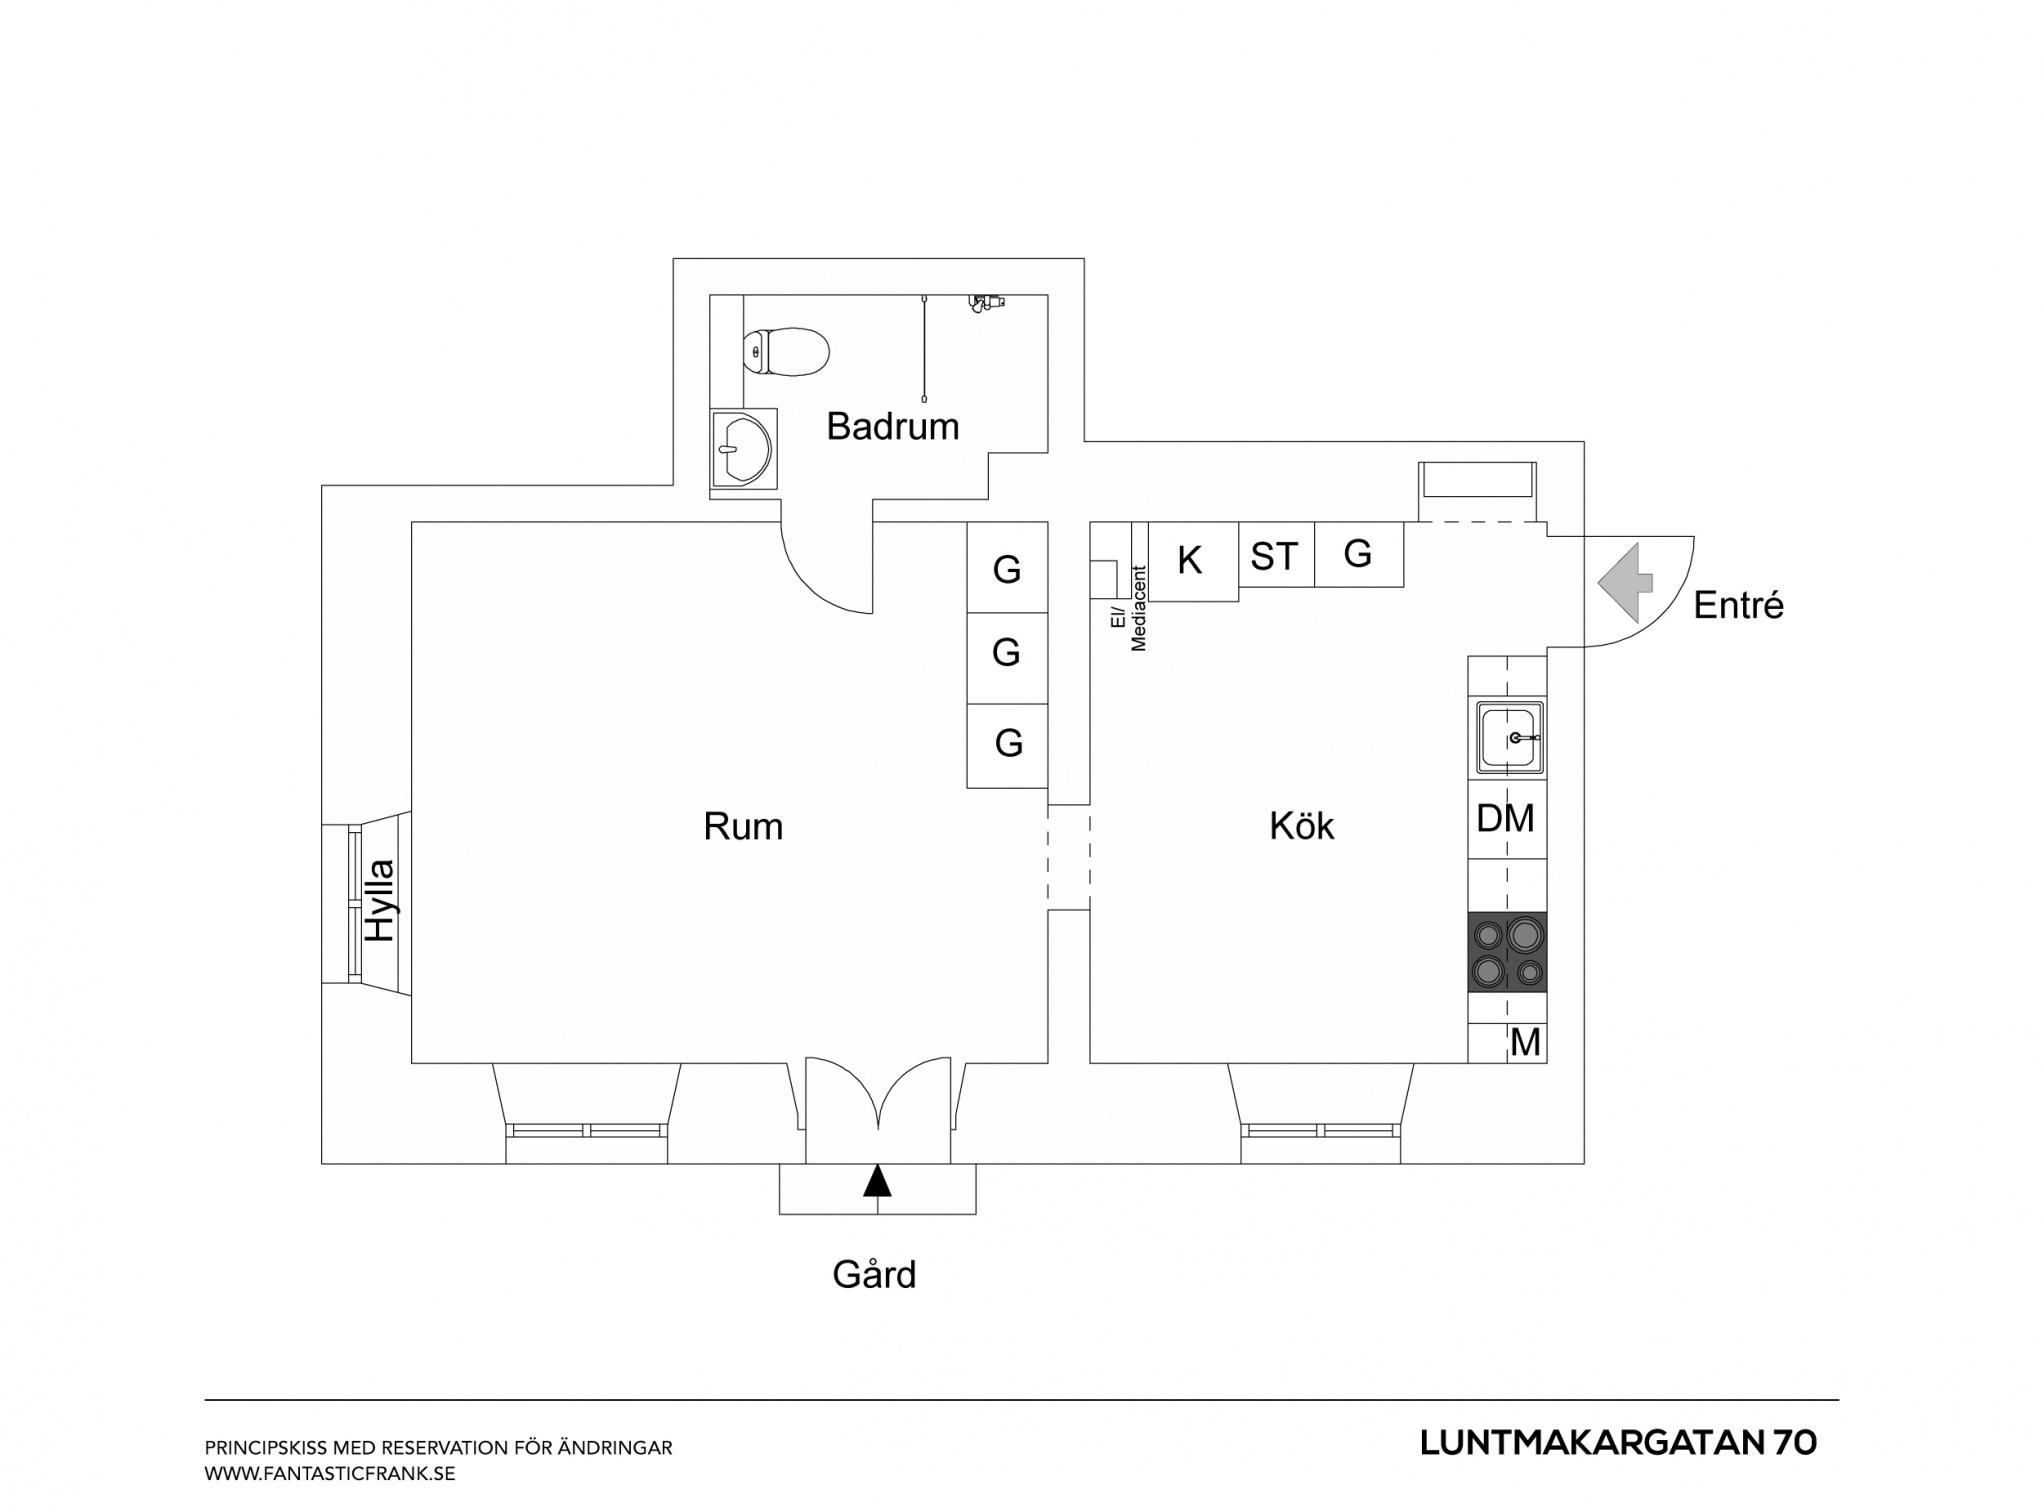 Floorplan of small Stockholm apartment